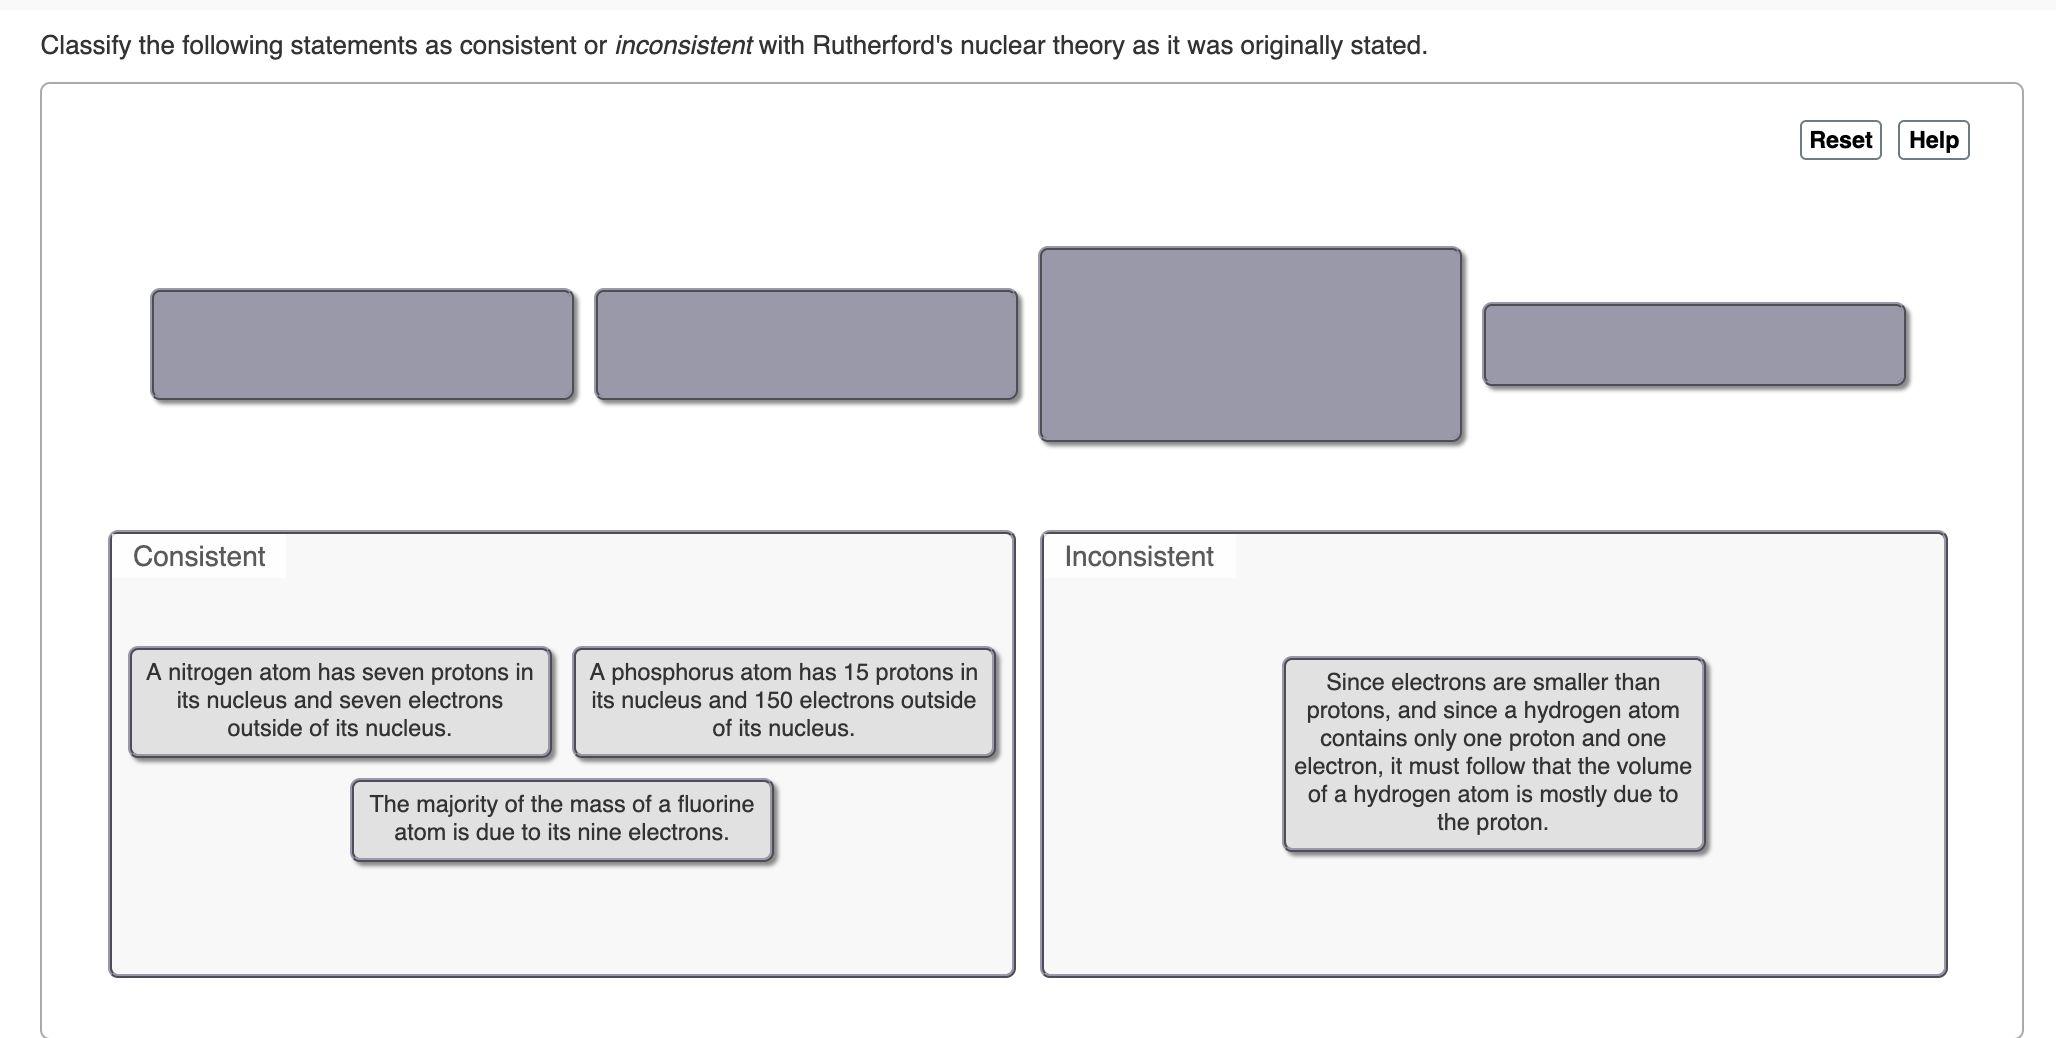 Classify the following statements as consistent or inconsistent with Rutherford's nuclear theory as it was originally stated. Help Reset Consistent Inconsistent A nitrogen atom has seven protons in its nucleus and seven electrons A phosphorus atom has 15 protons in its nucleus and 150 electrons outside Since electrons are smaller than protons, and since a hydrogen atom contains only one proton and one electron, it must follow that the volume of a hydrogen atom is mostly due to the proton. outside of its nucleus. of its nucleus. The majority of the mass of a fluorine atom is due to its nine electrons.